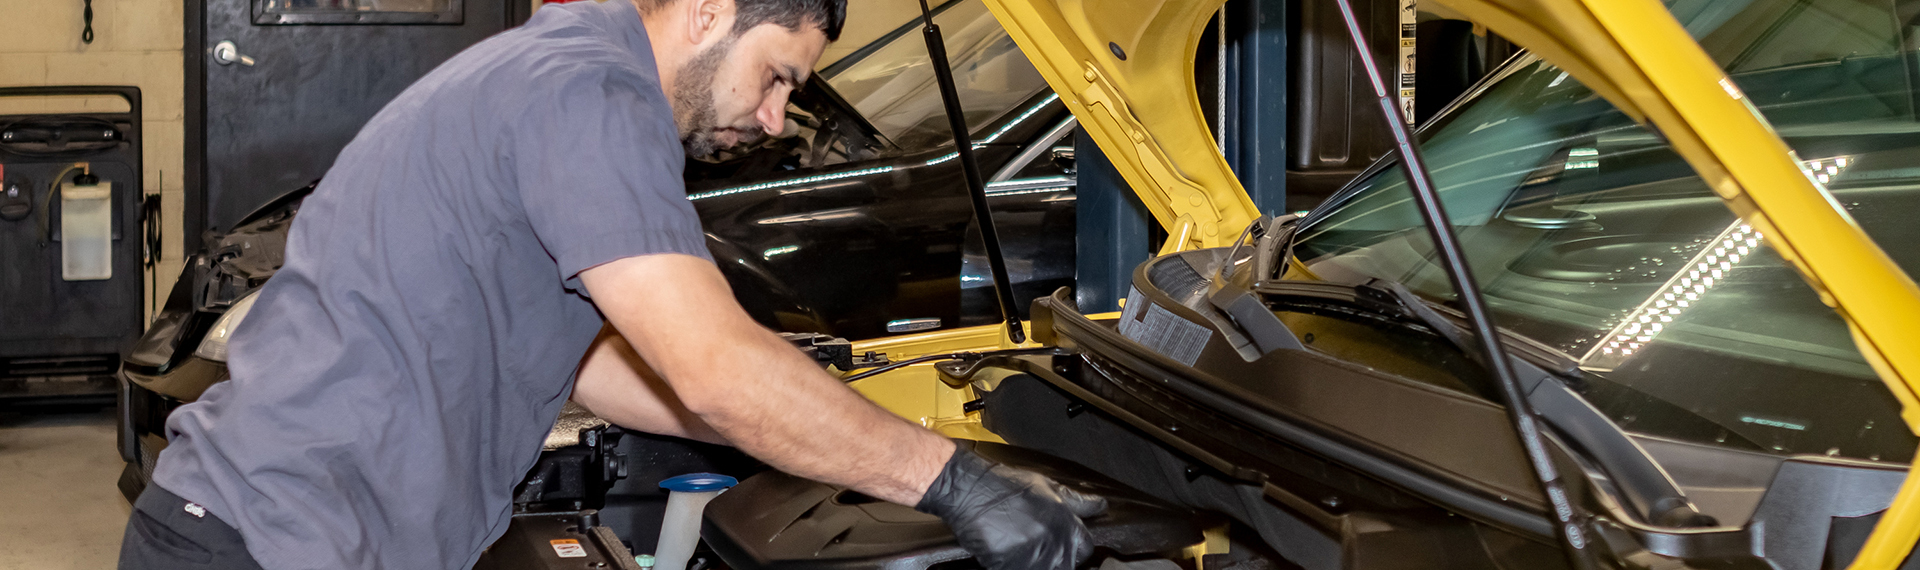 A mechanic works on a vehicle at ATC Auto Center in Augusta, GA